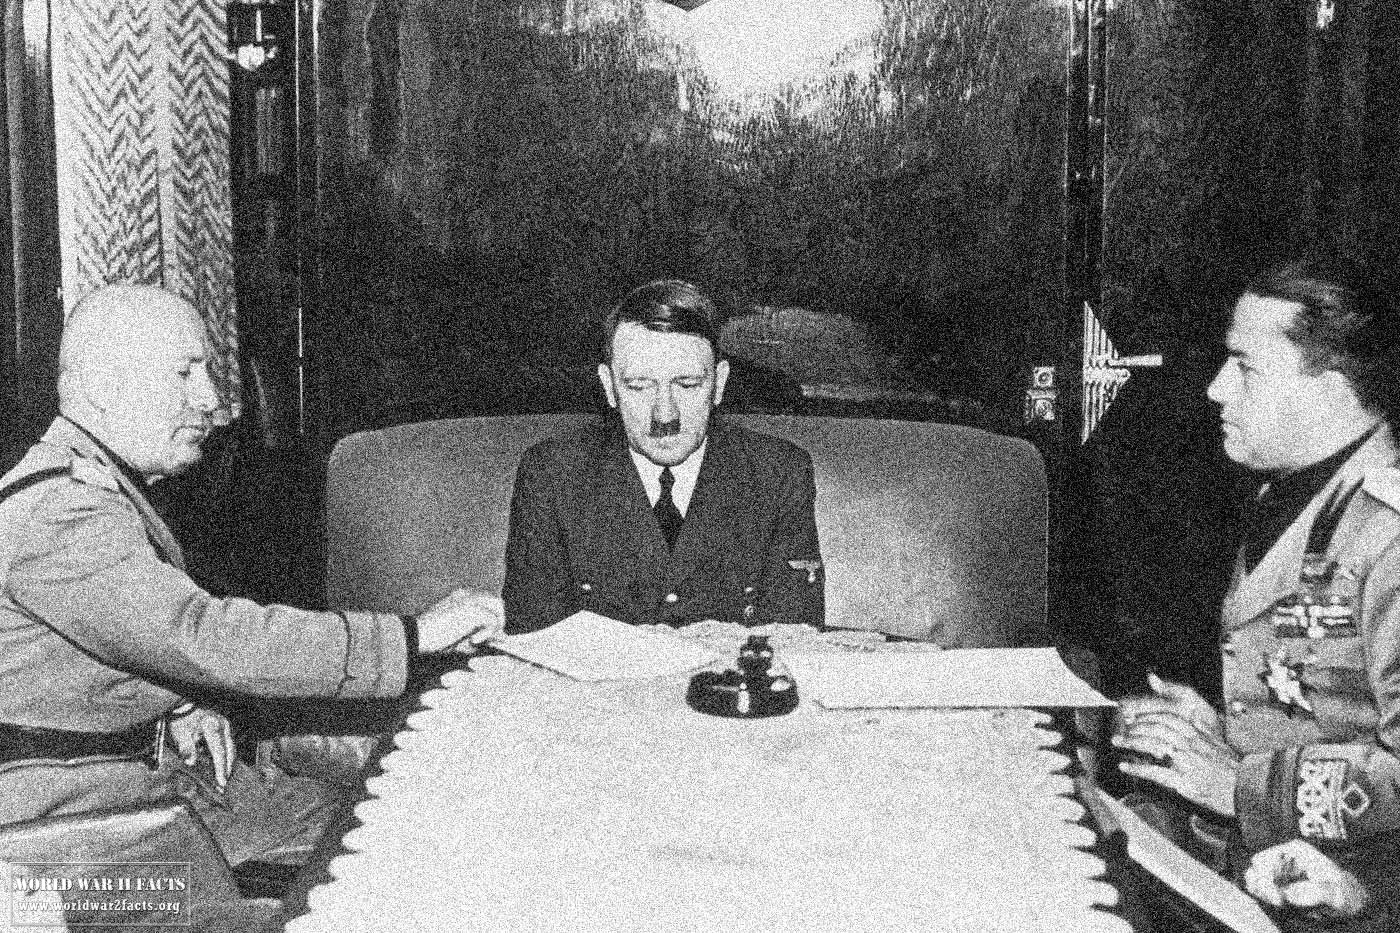 Mussolini and Hitler - Axis Powers WWII (KEYSTONE/HULTON ARCHIVE/GETTY IMAGES)